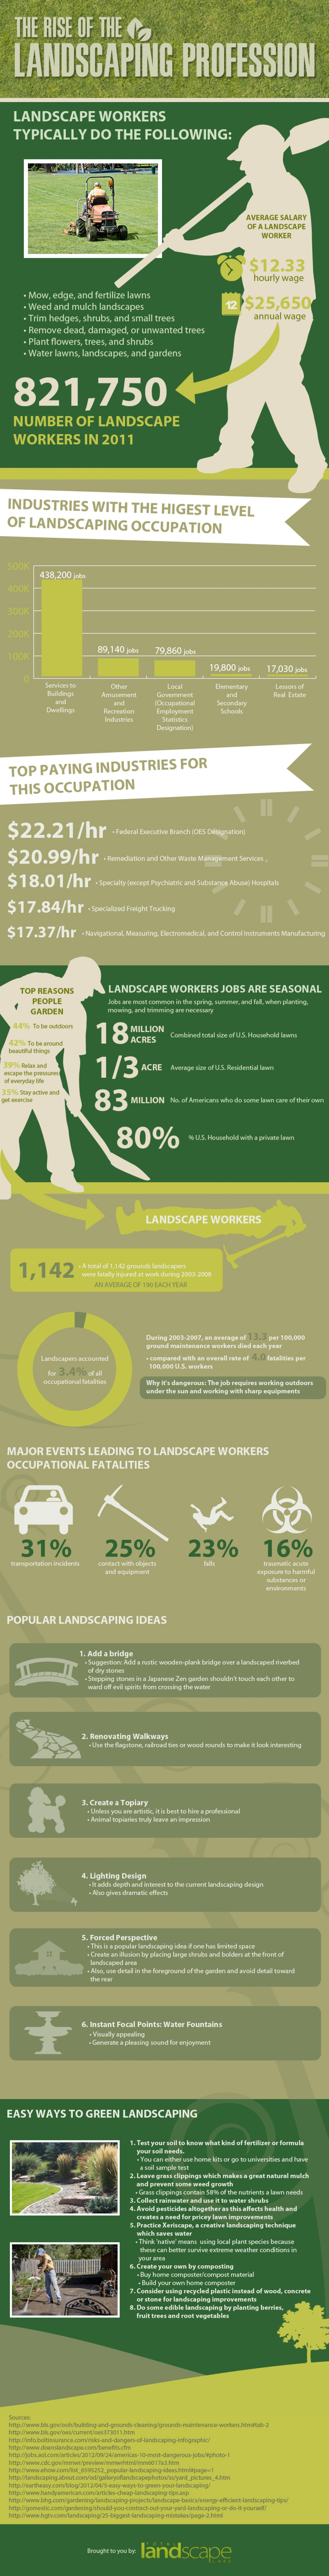 Landscape Industry Trends